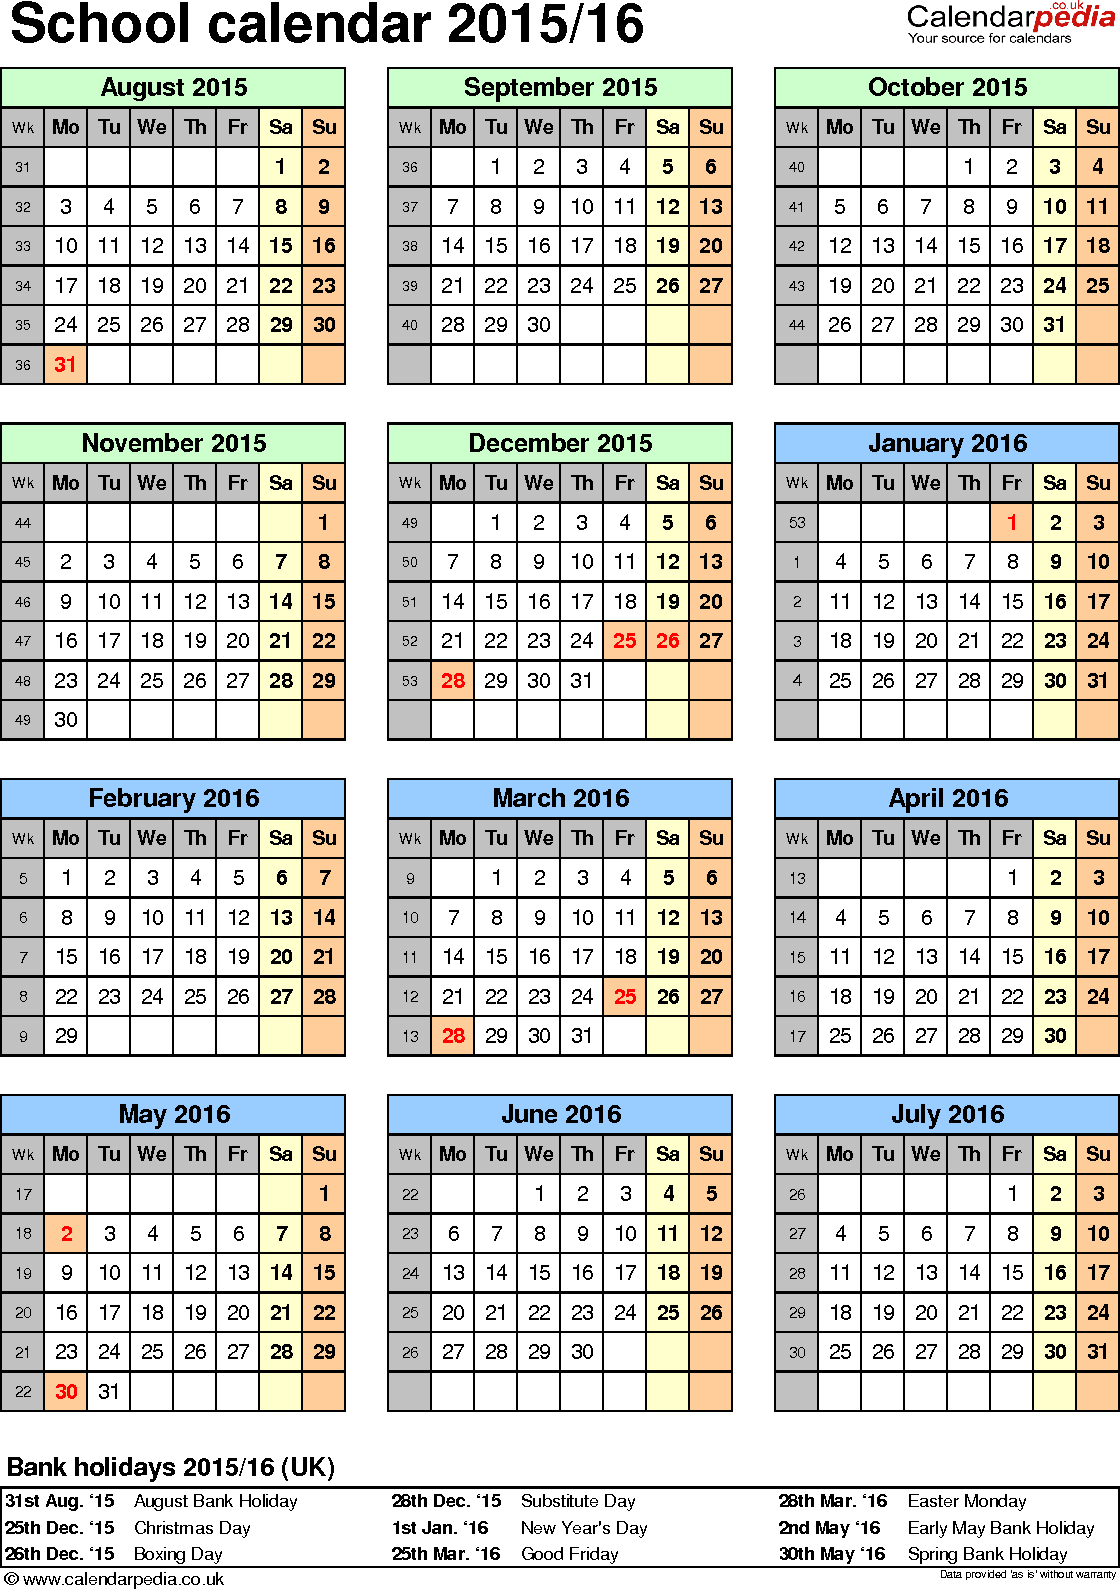 Template 5: School year calendars 2015/16 as PDF template, portrait orientation, one A4 page